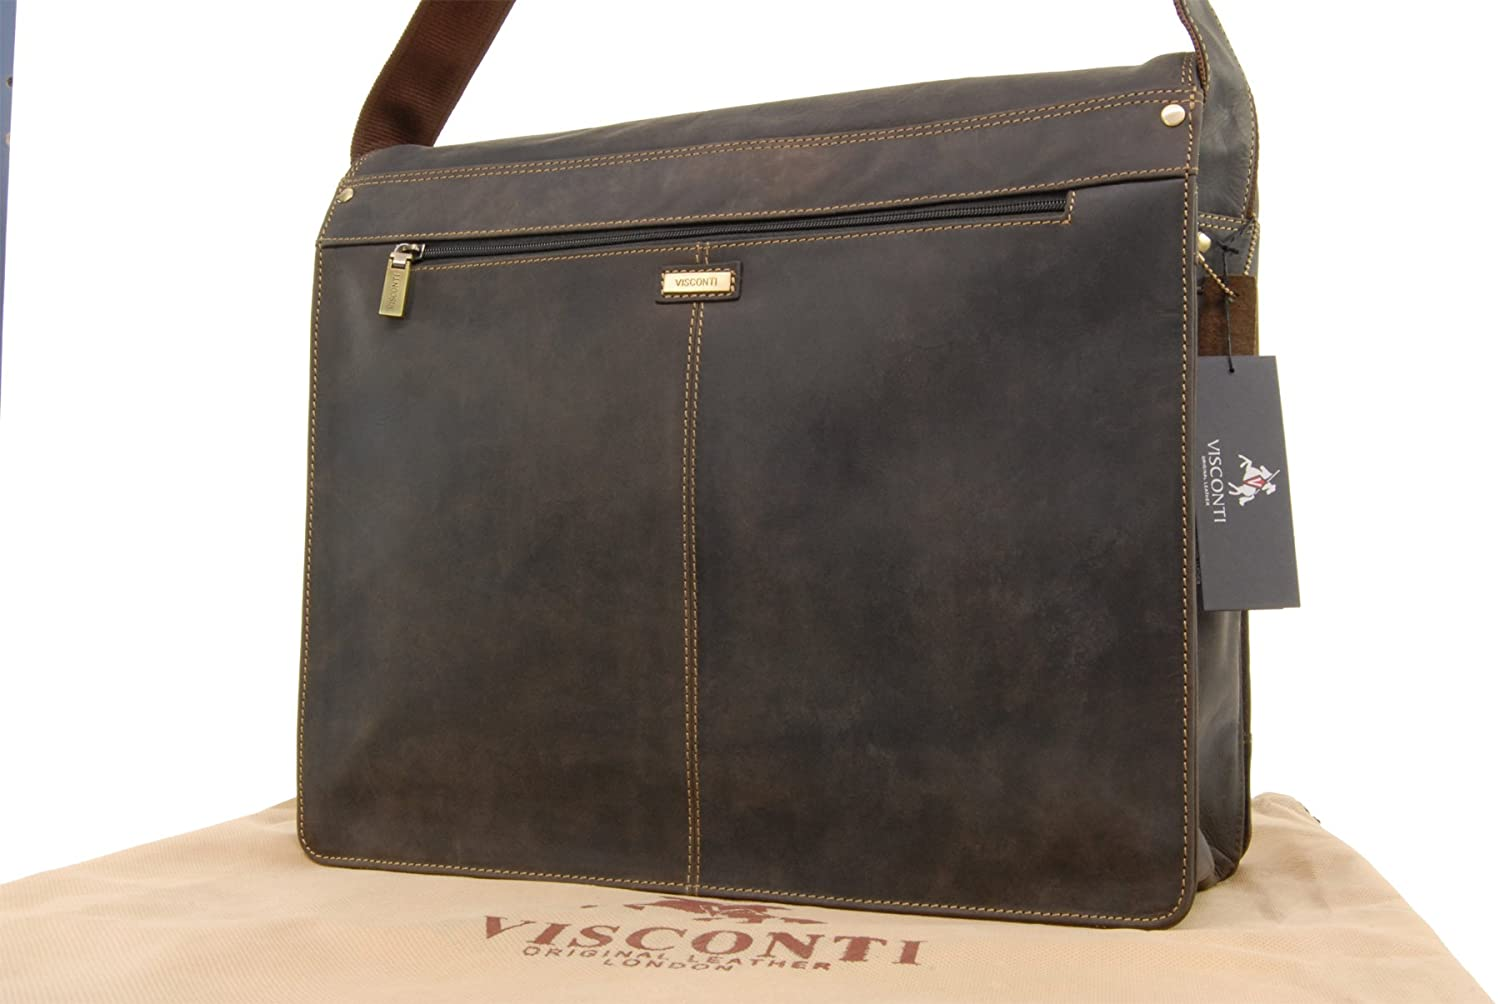 VISCONTI - HARVARD 16054 - Bolso bandolera para portátil - Cuero Hunter - XL - Marrón: Amazon.es: Equipaje